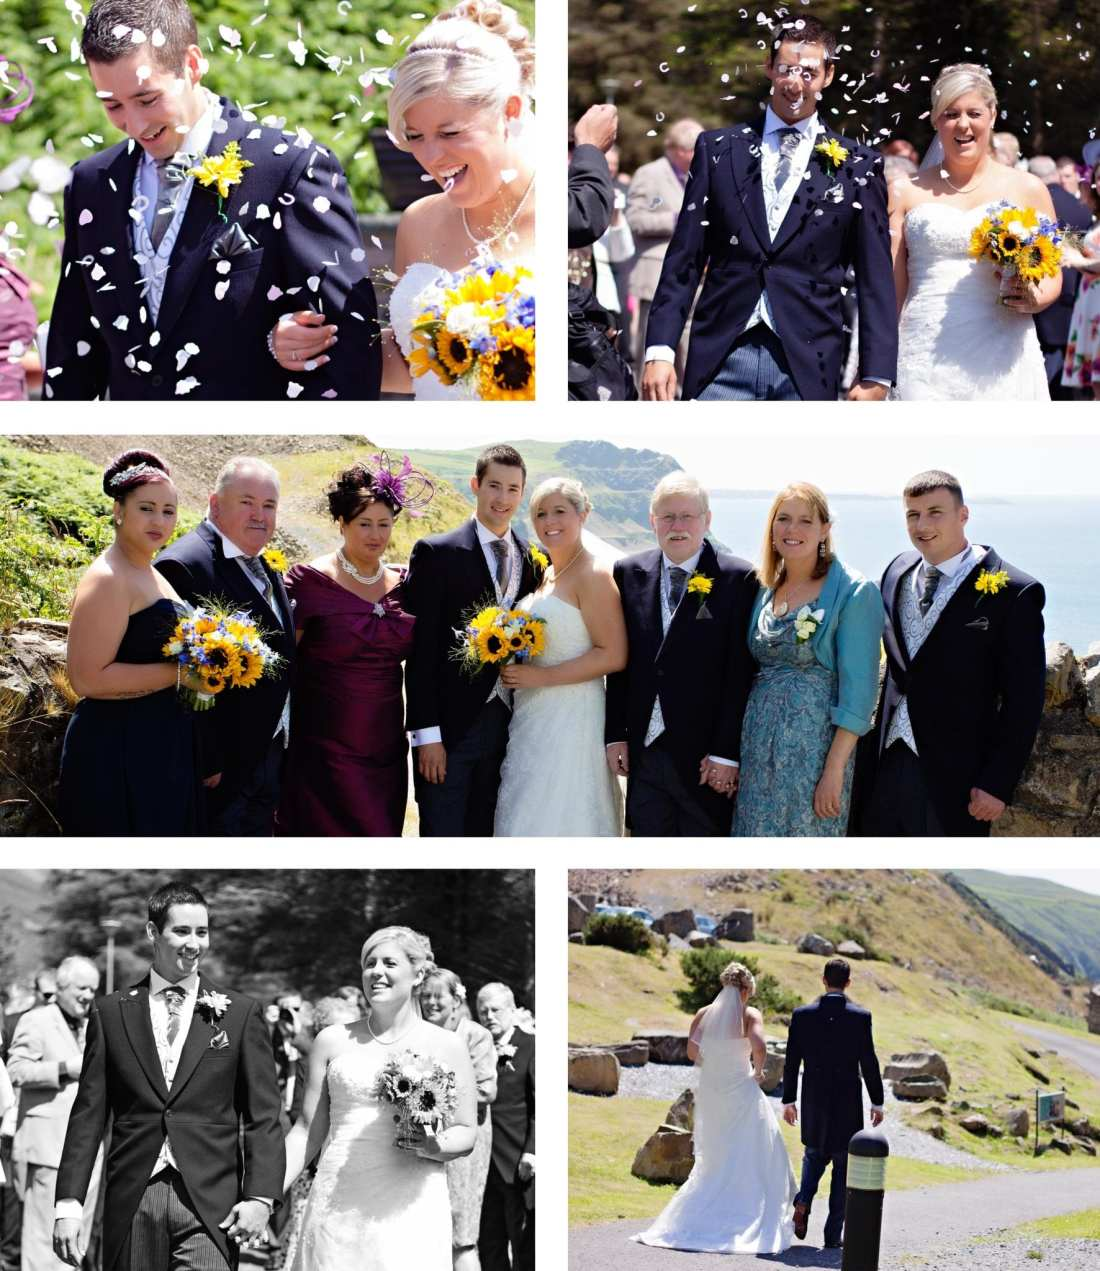 North Wales wedding - Confetti toss